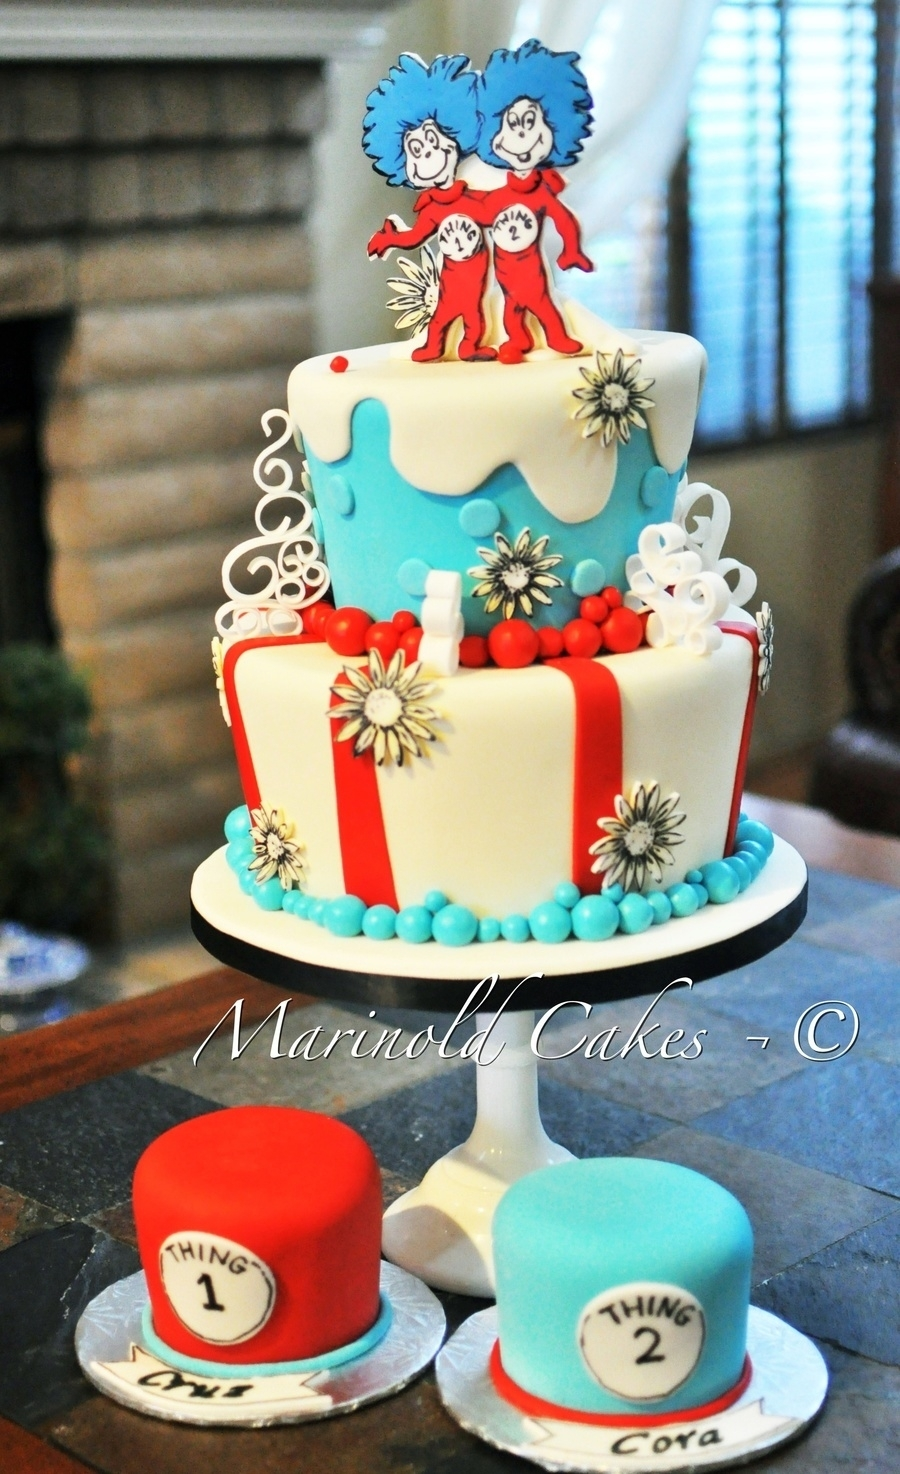 10 Awesome Thing 1 And Thing 2 Cake Ideas %name 2020